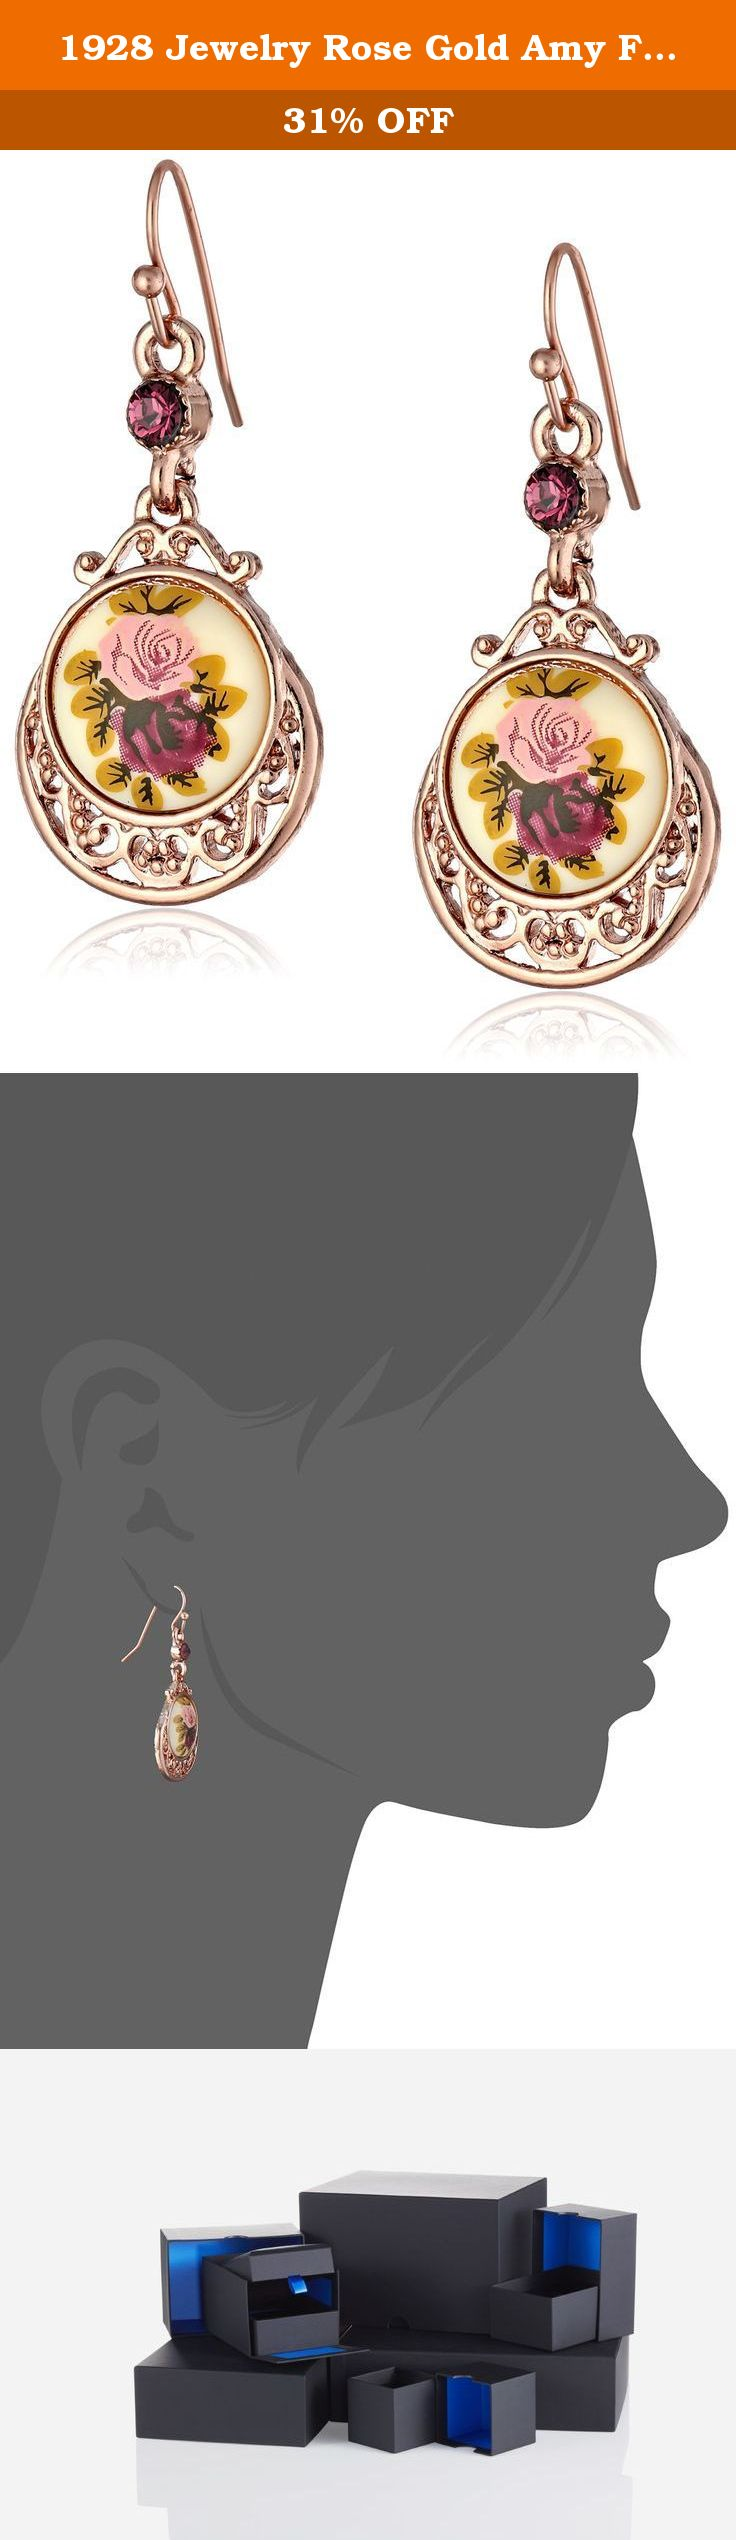 1928 Jewelry Rose Gold Amy Flower Dangle Earrings A charming duo